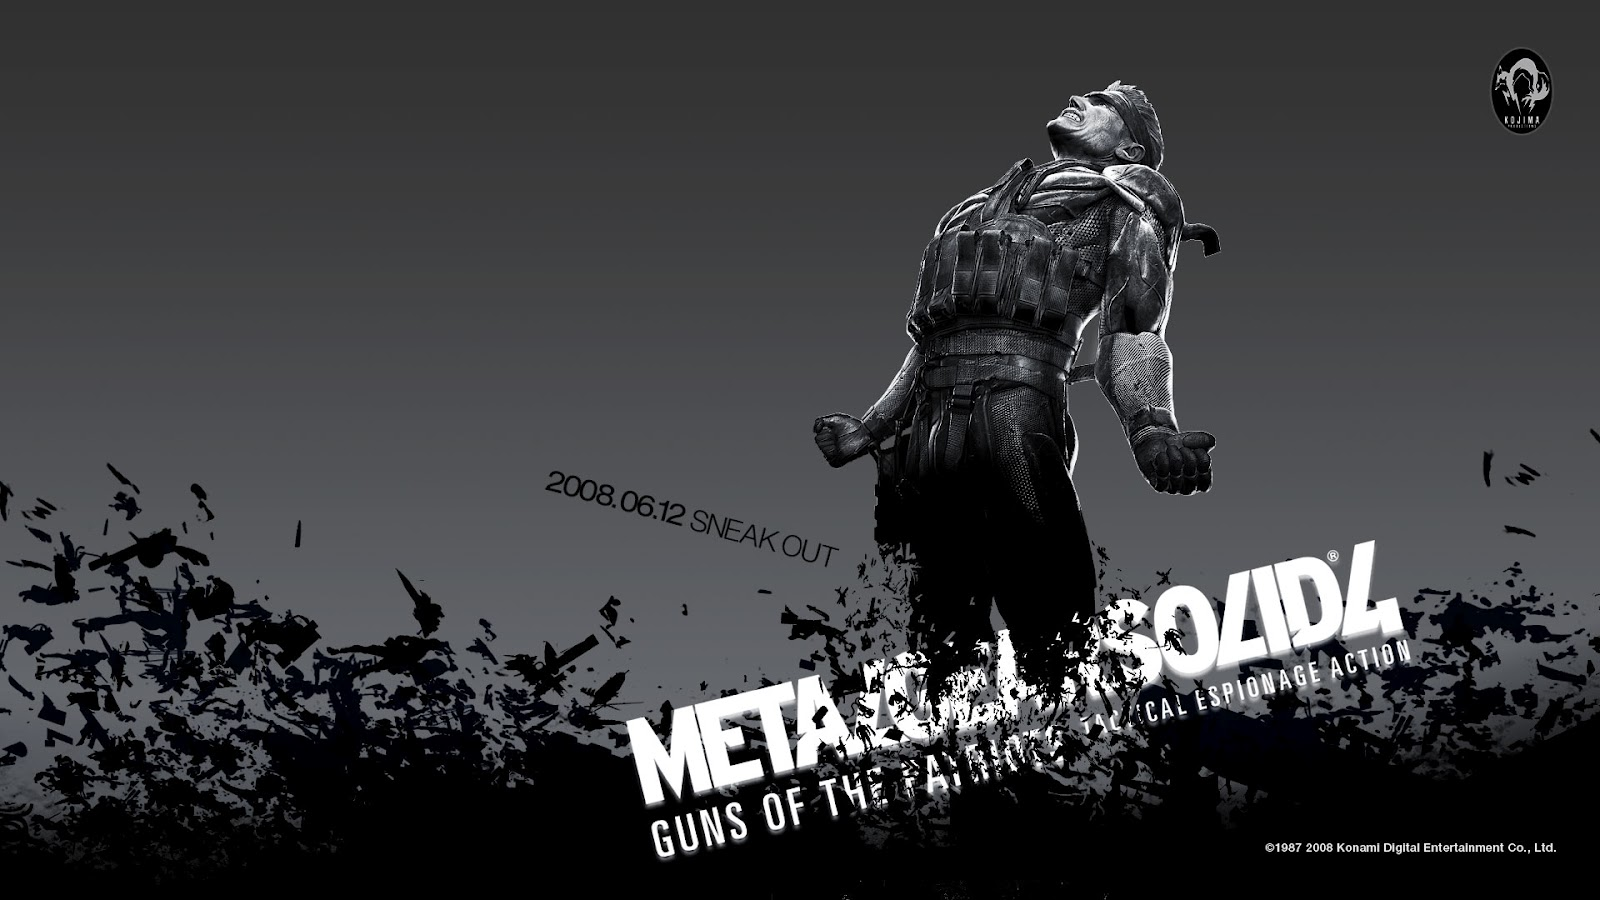 metal gear solid 4 ps3 wallpaper Metal Gear Solid 4: Guns of the Patriots Wallpapers in HD